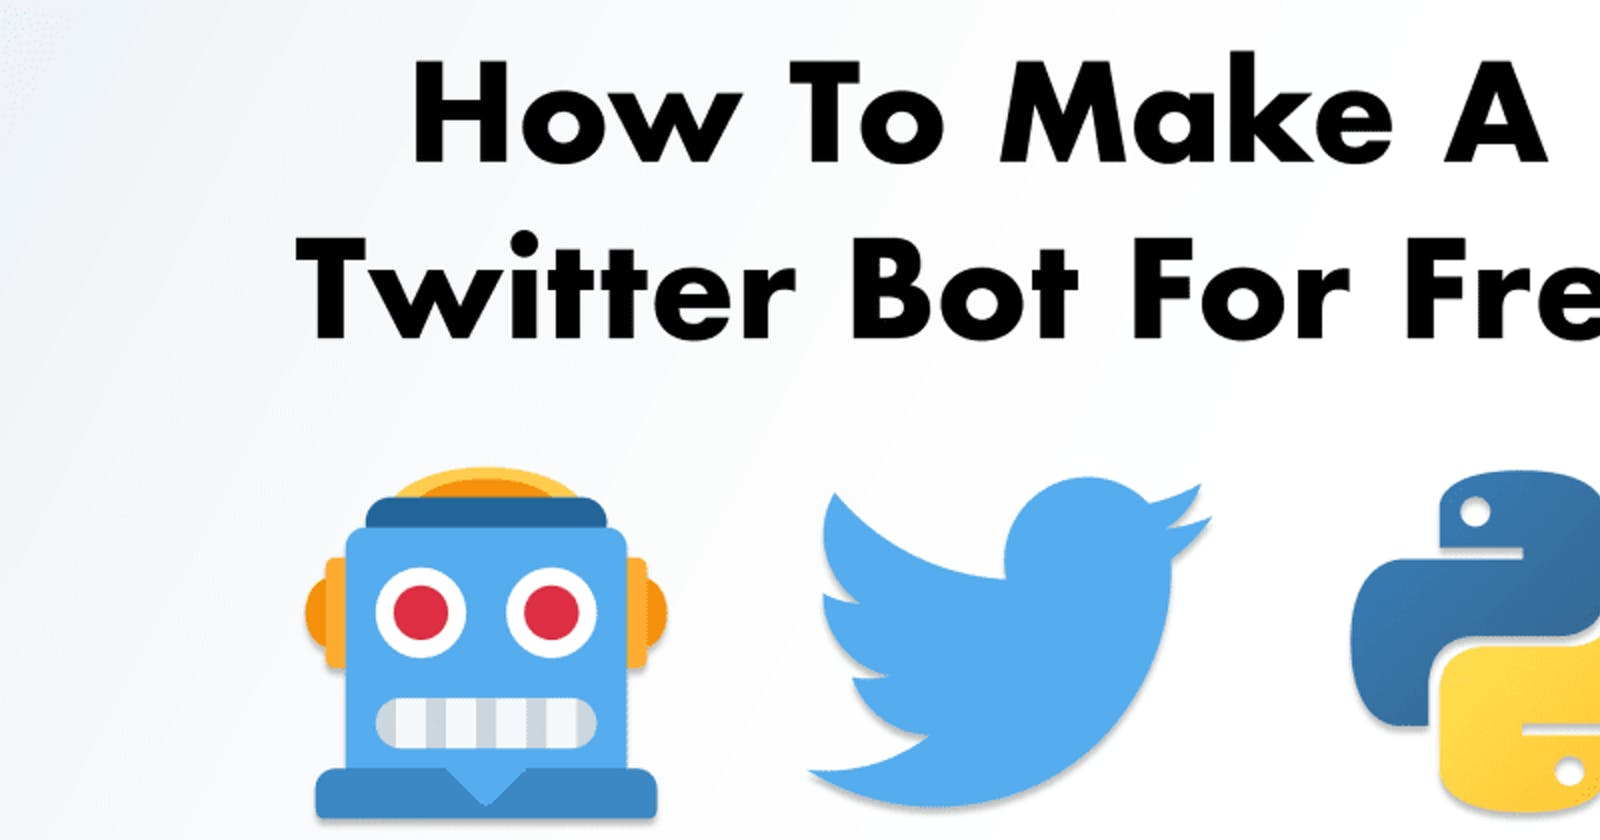 How to make a Twitterbot?